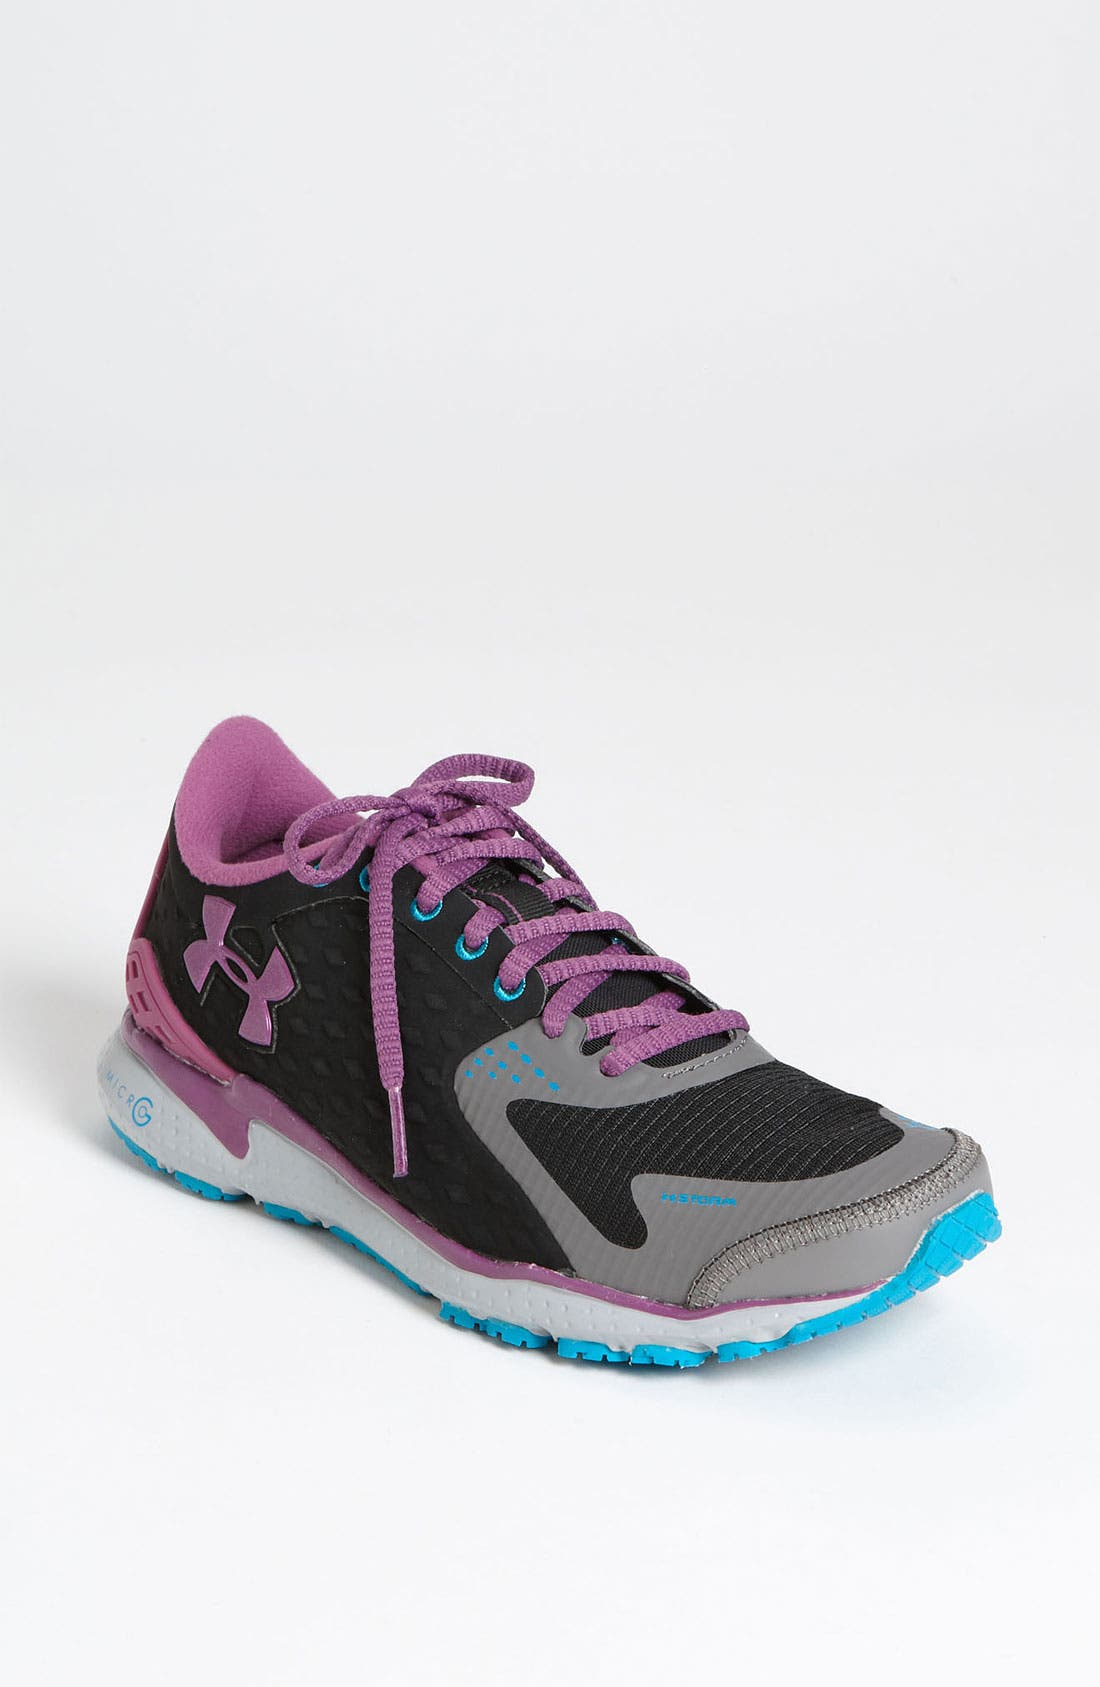 Alternate Image 1 Selected - Under Armour 'Micro G®' Running Shoe (Women)